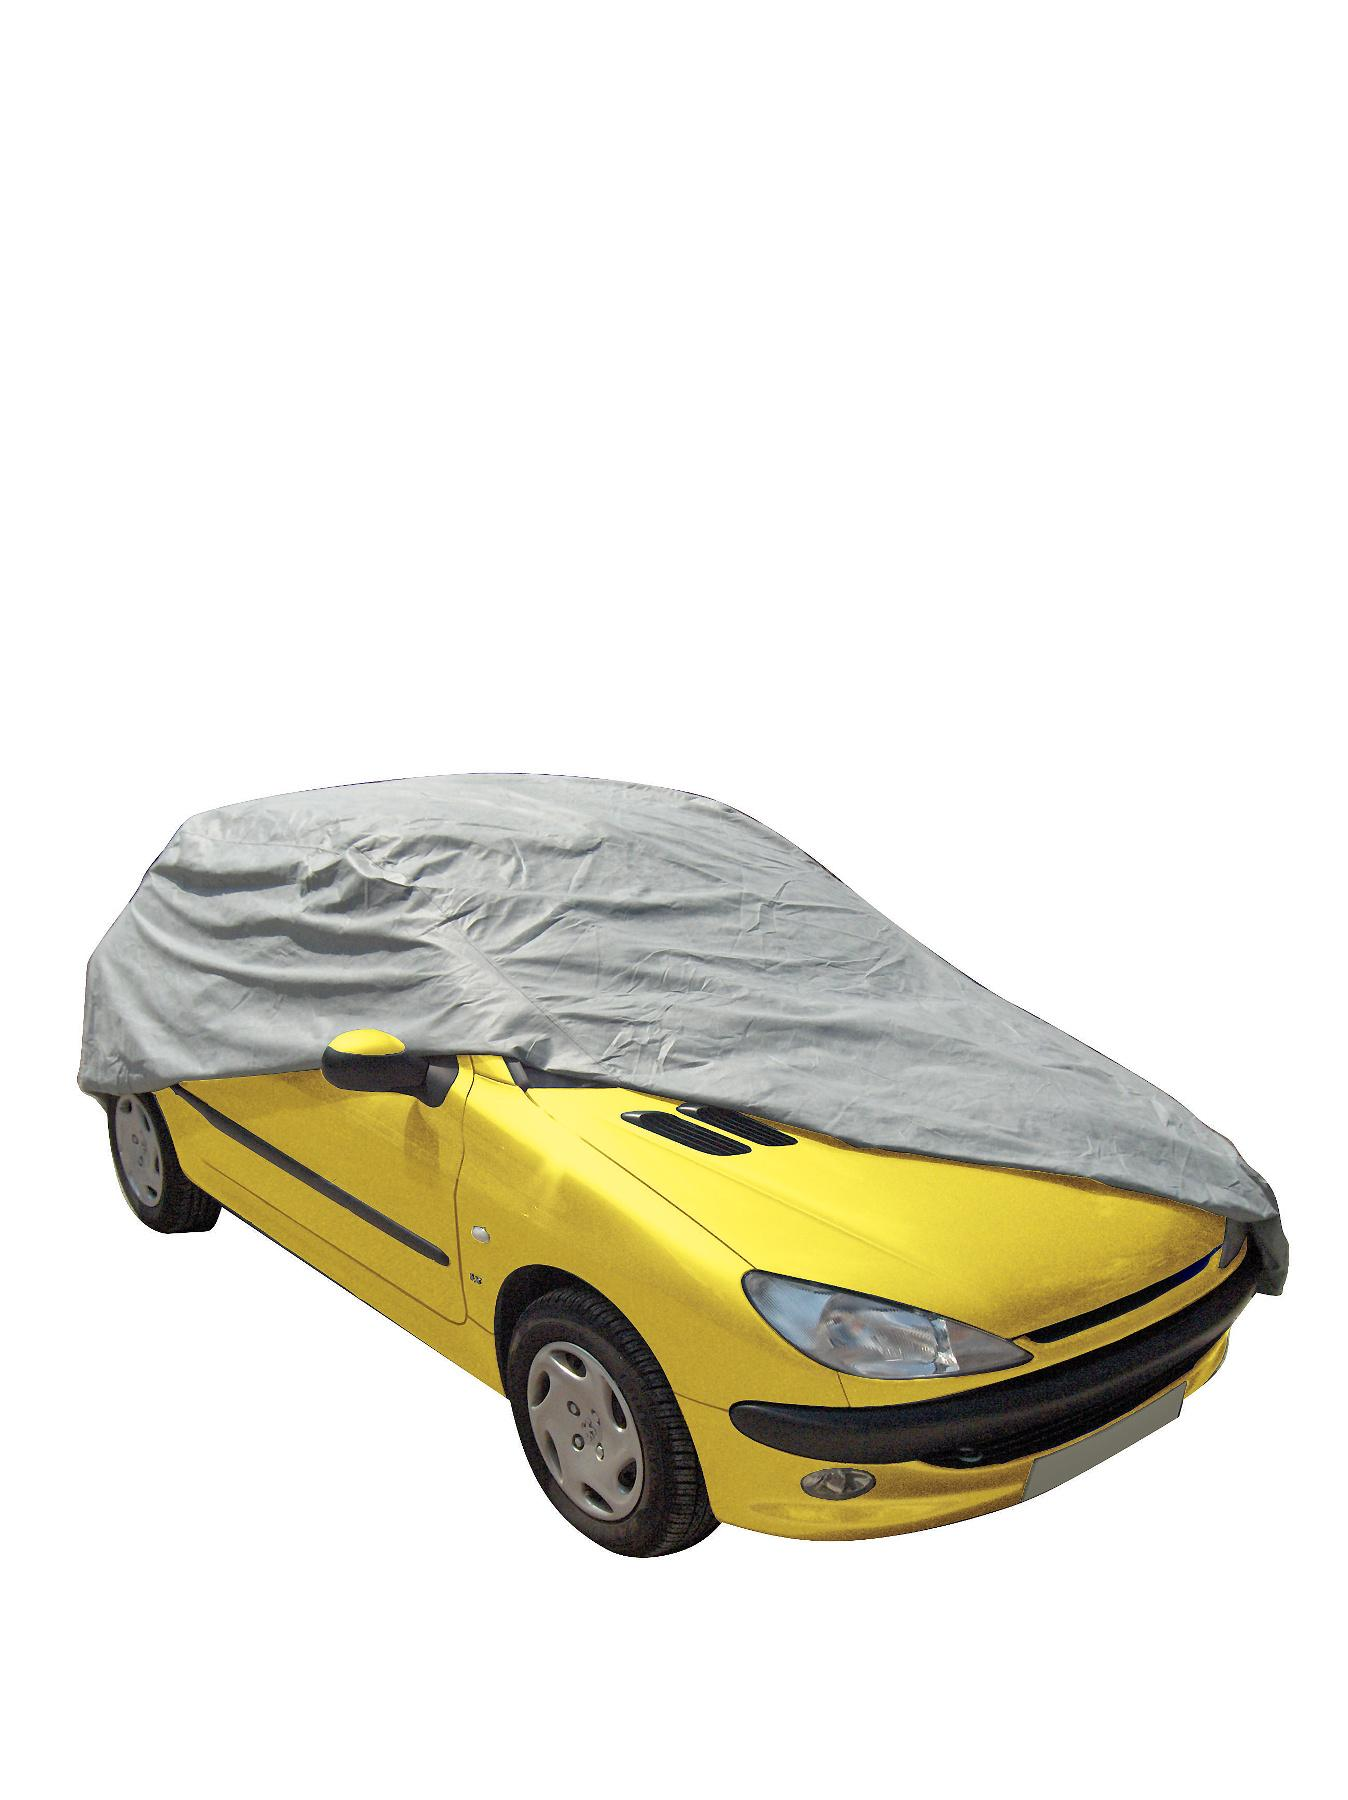 Streetwize Accessories Vehicle Cover - Small